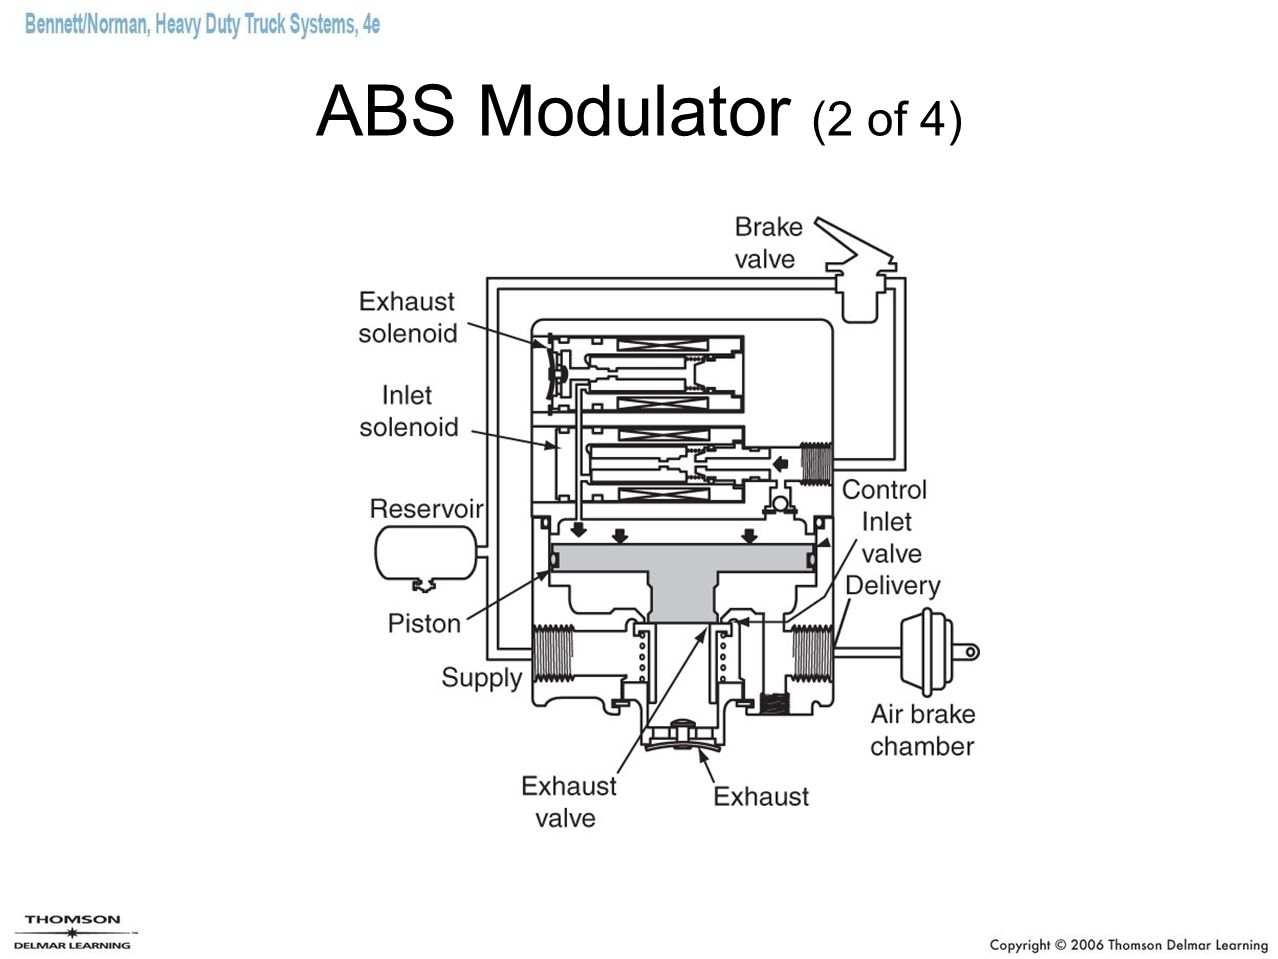 Chapter 30 Abs And Ebs Ppt Video Online Download Car Brake System Diagram Electropneumatic Brakes 14 Modulator 2 Of 4